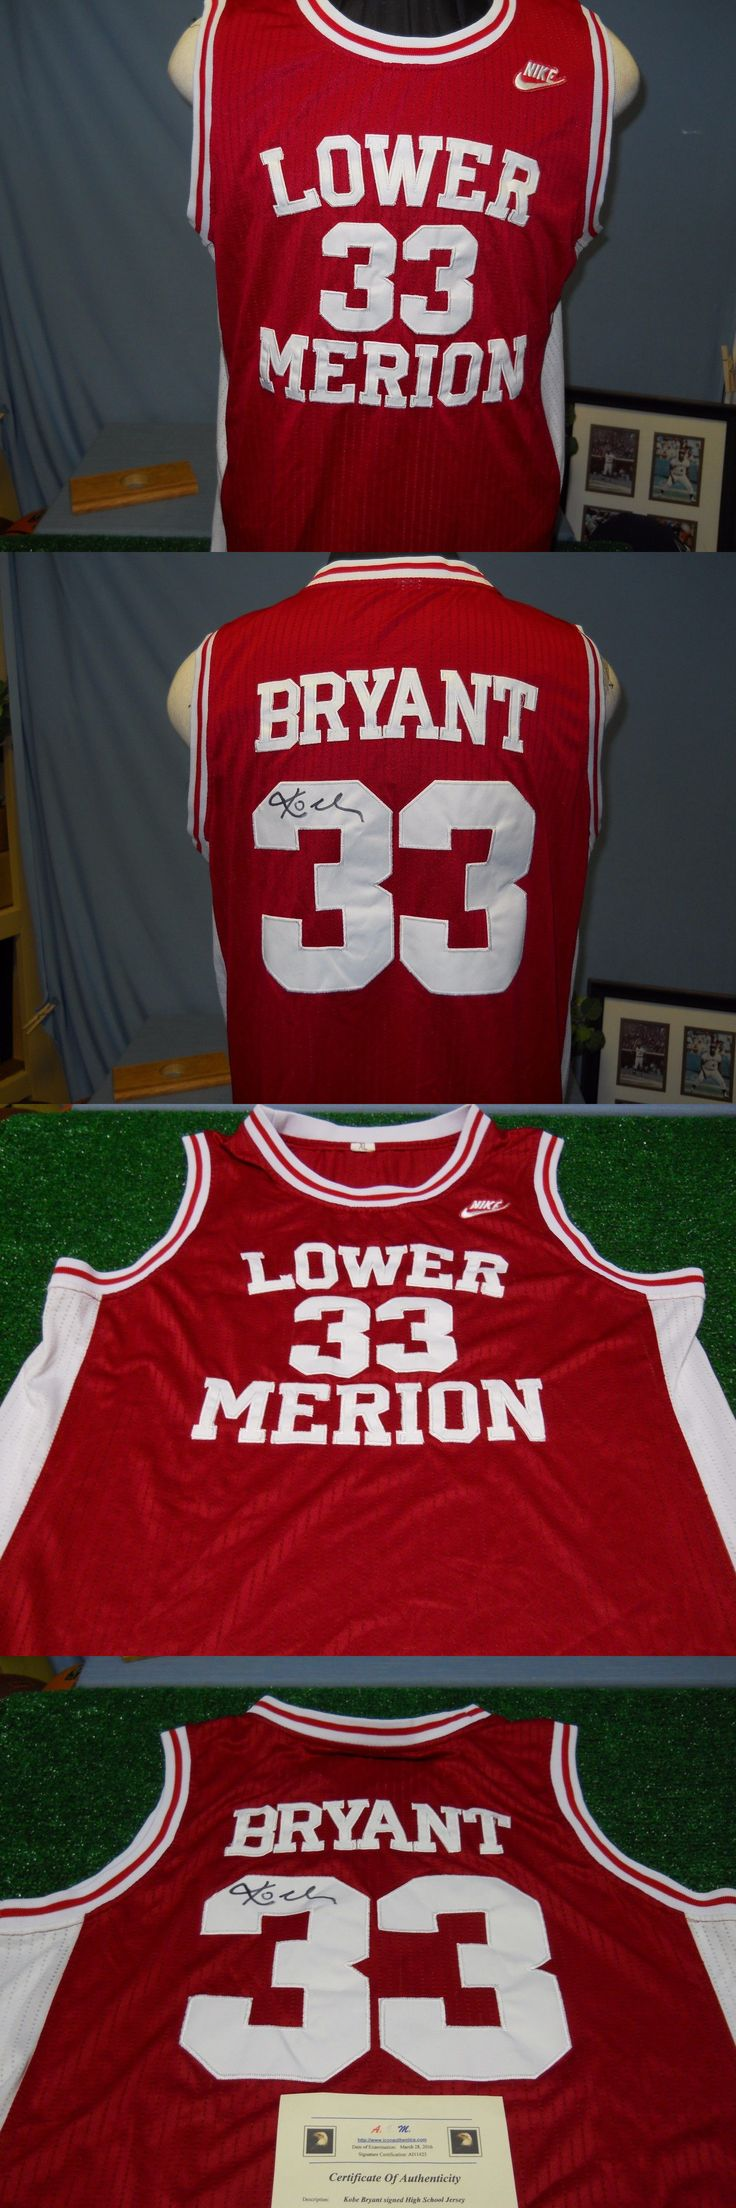 9fb032090 ... Basketball-Other 205 Kobe Bryant Signed Certified Lower Merion High  School Jersey ...